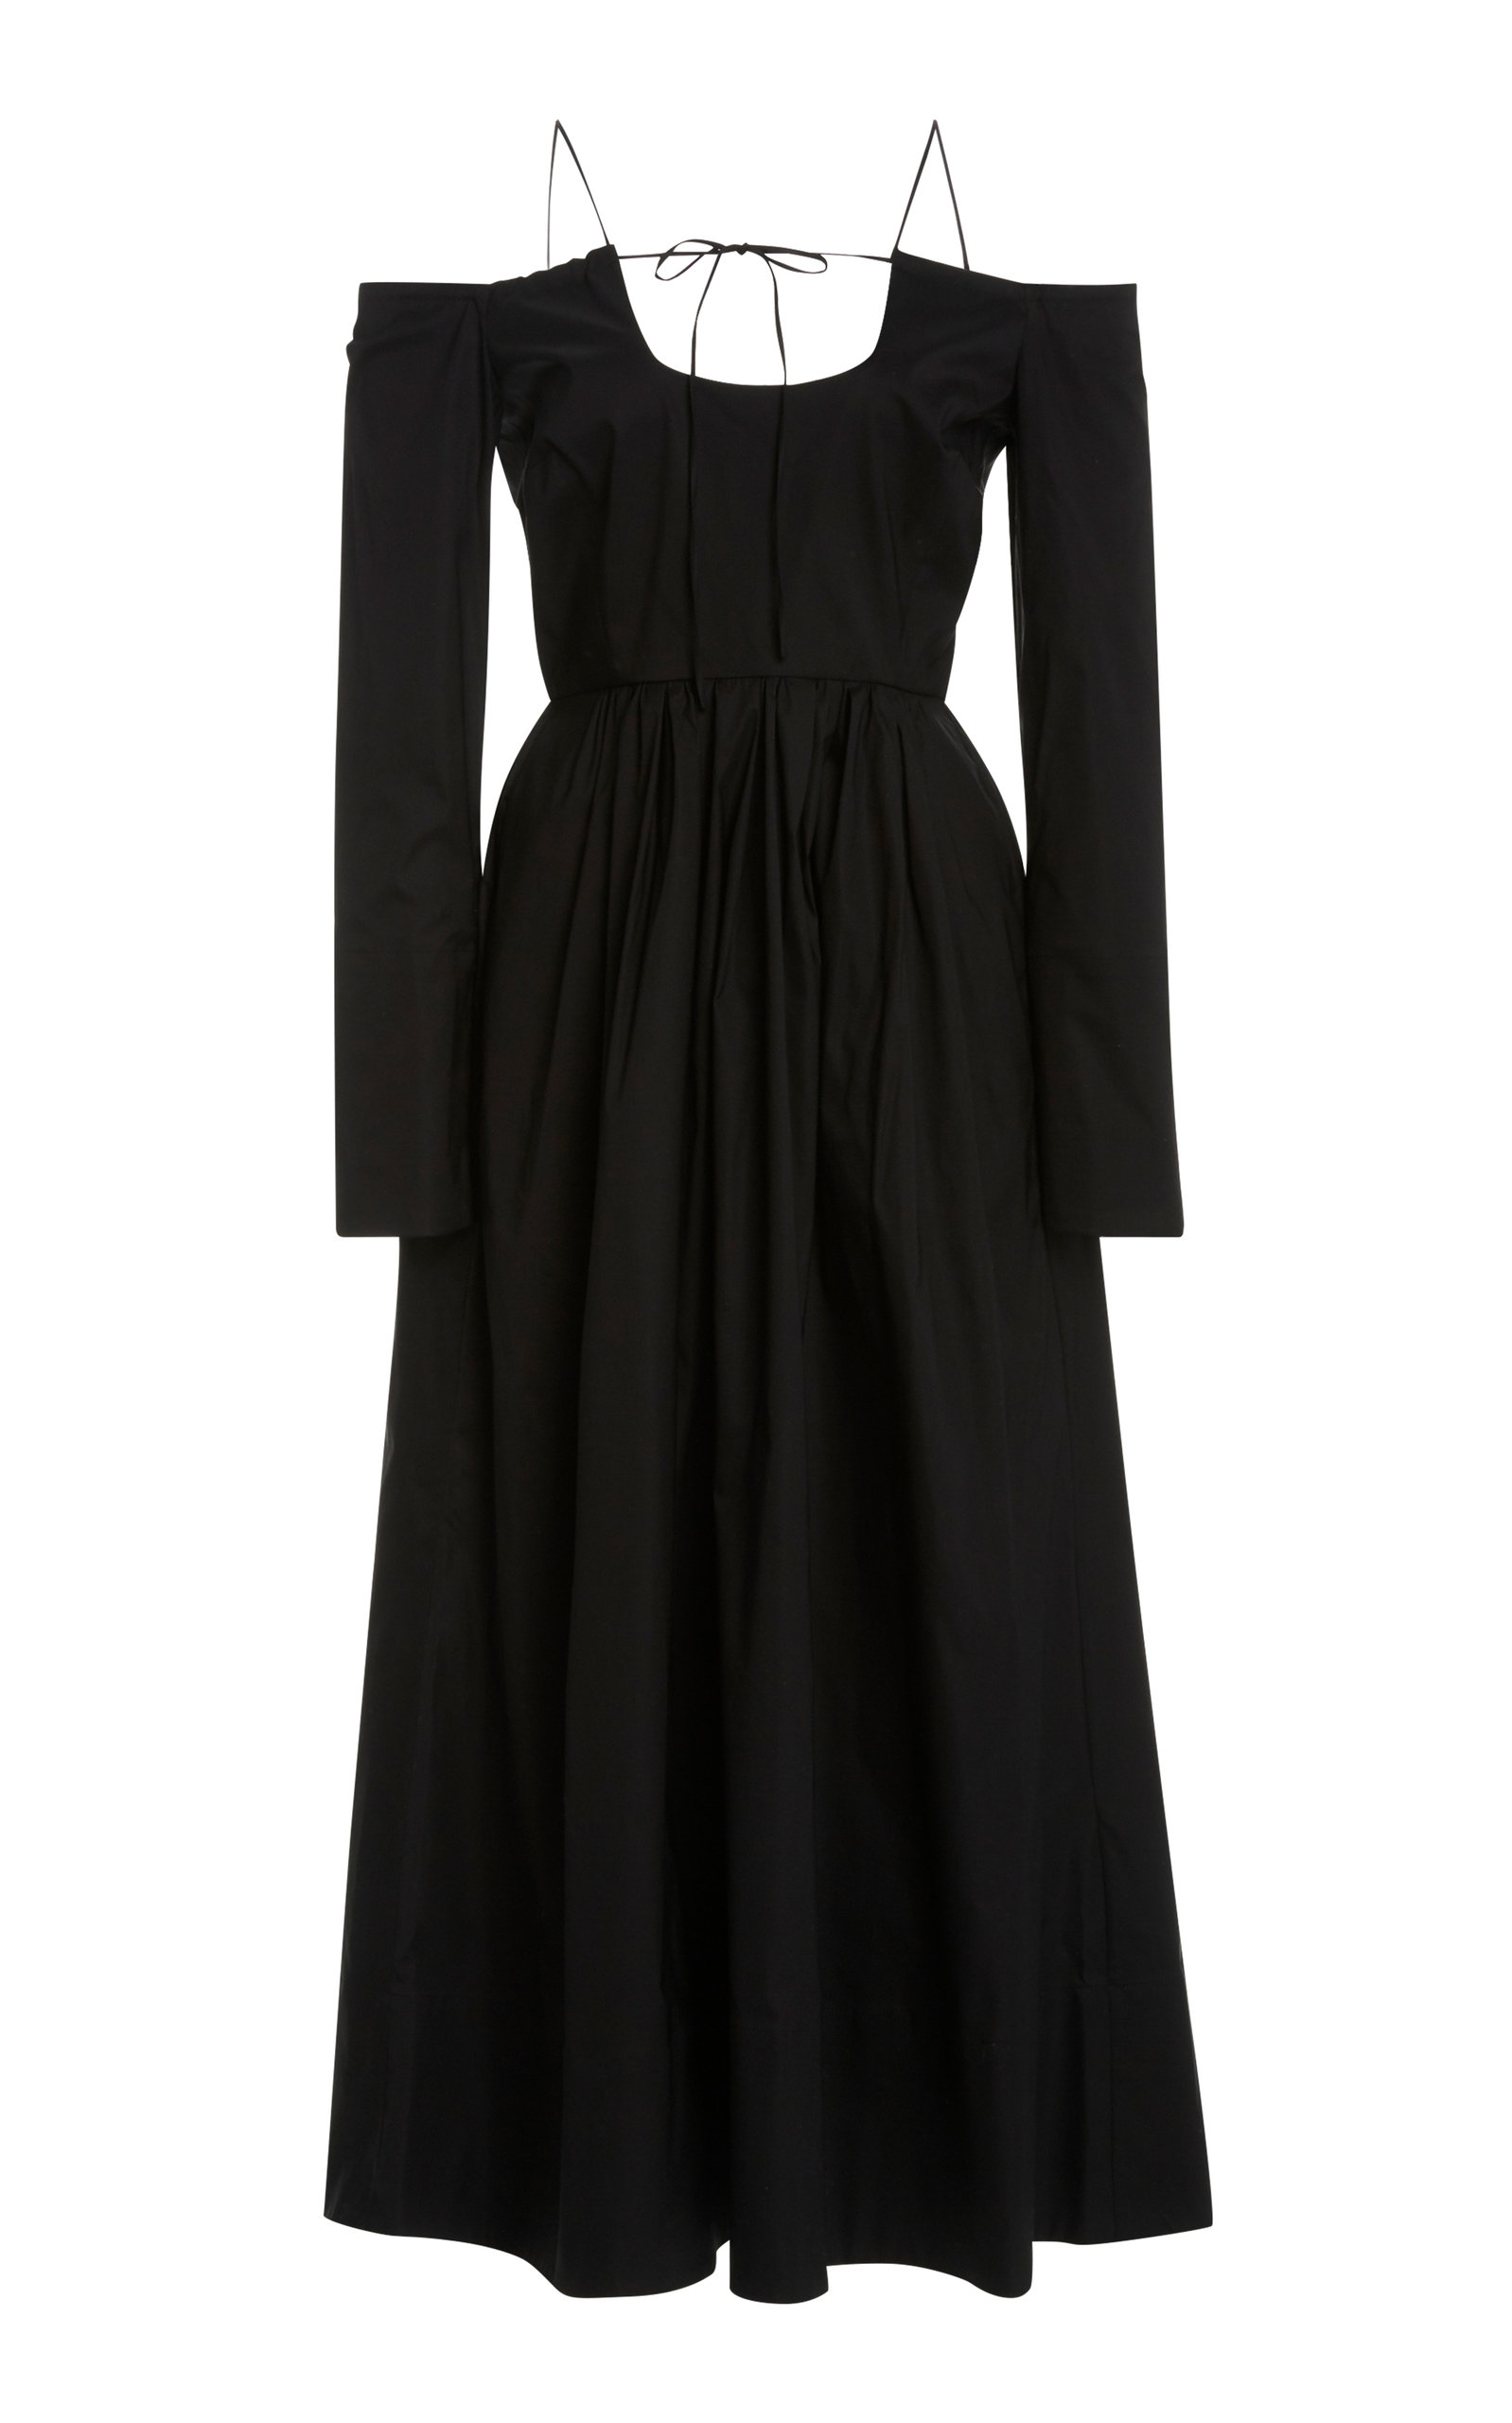 Buy By Any Other Name Pastoral Cotton-Blend Midi Dress online, shop By Any Other Name at the best price